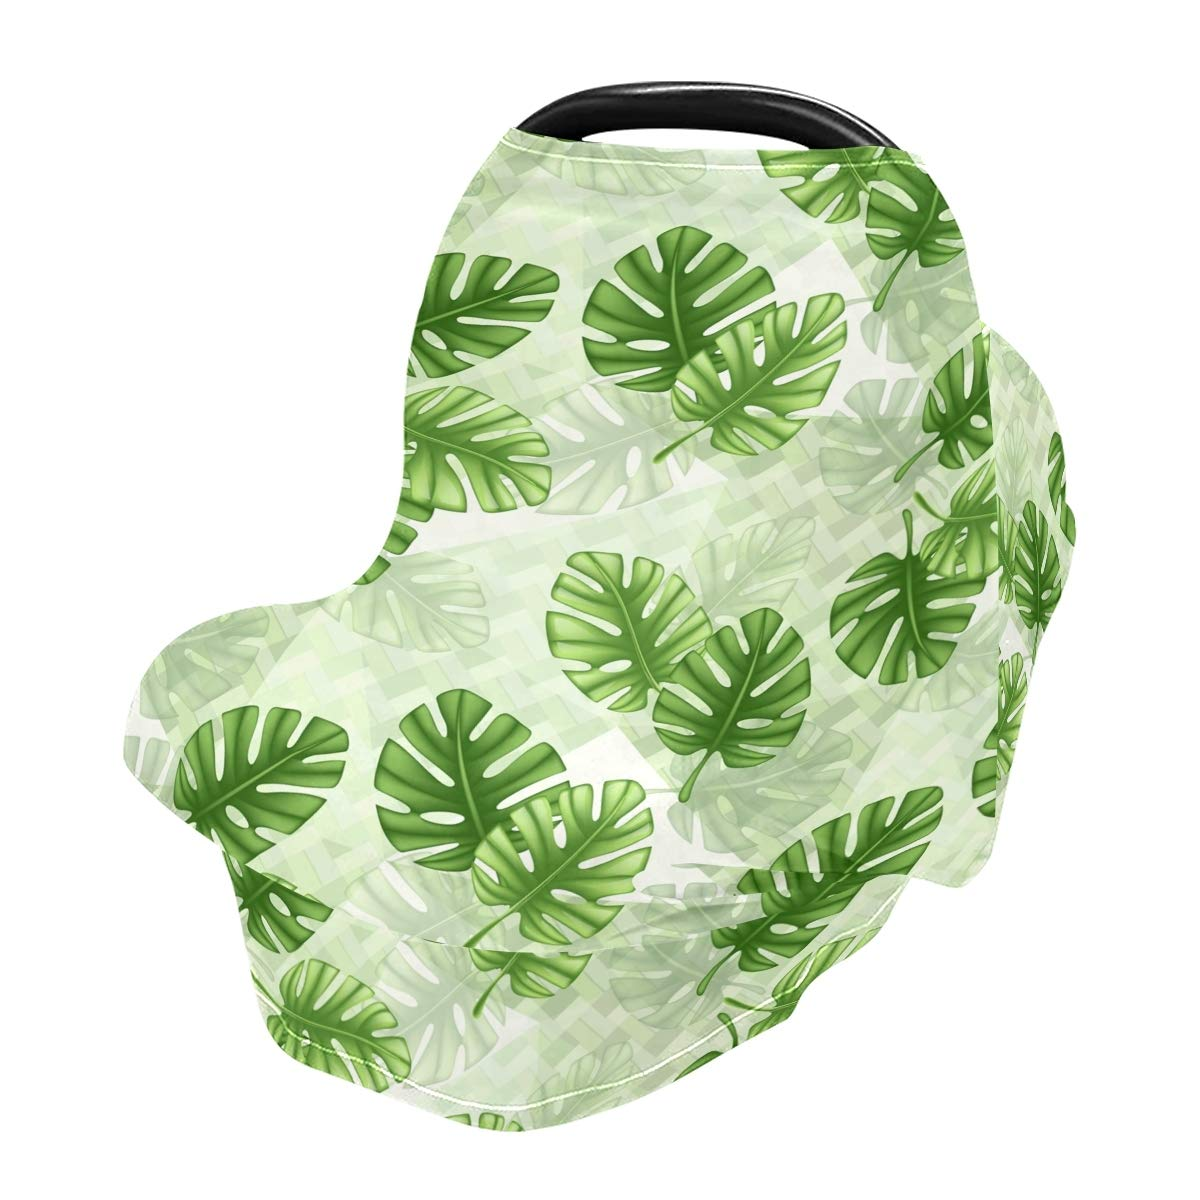 Baby Car Seat Cover Tropical Leaf Monstera Nursing Covers Breastfeeding Scarf Infant Carseat Canopy for Mom Baby Gift